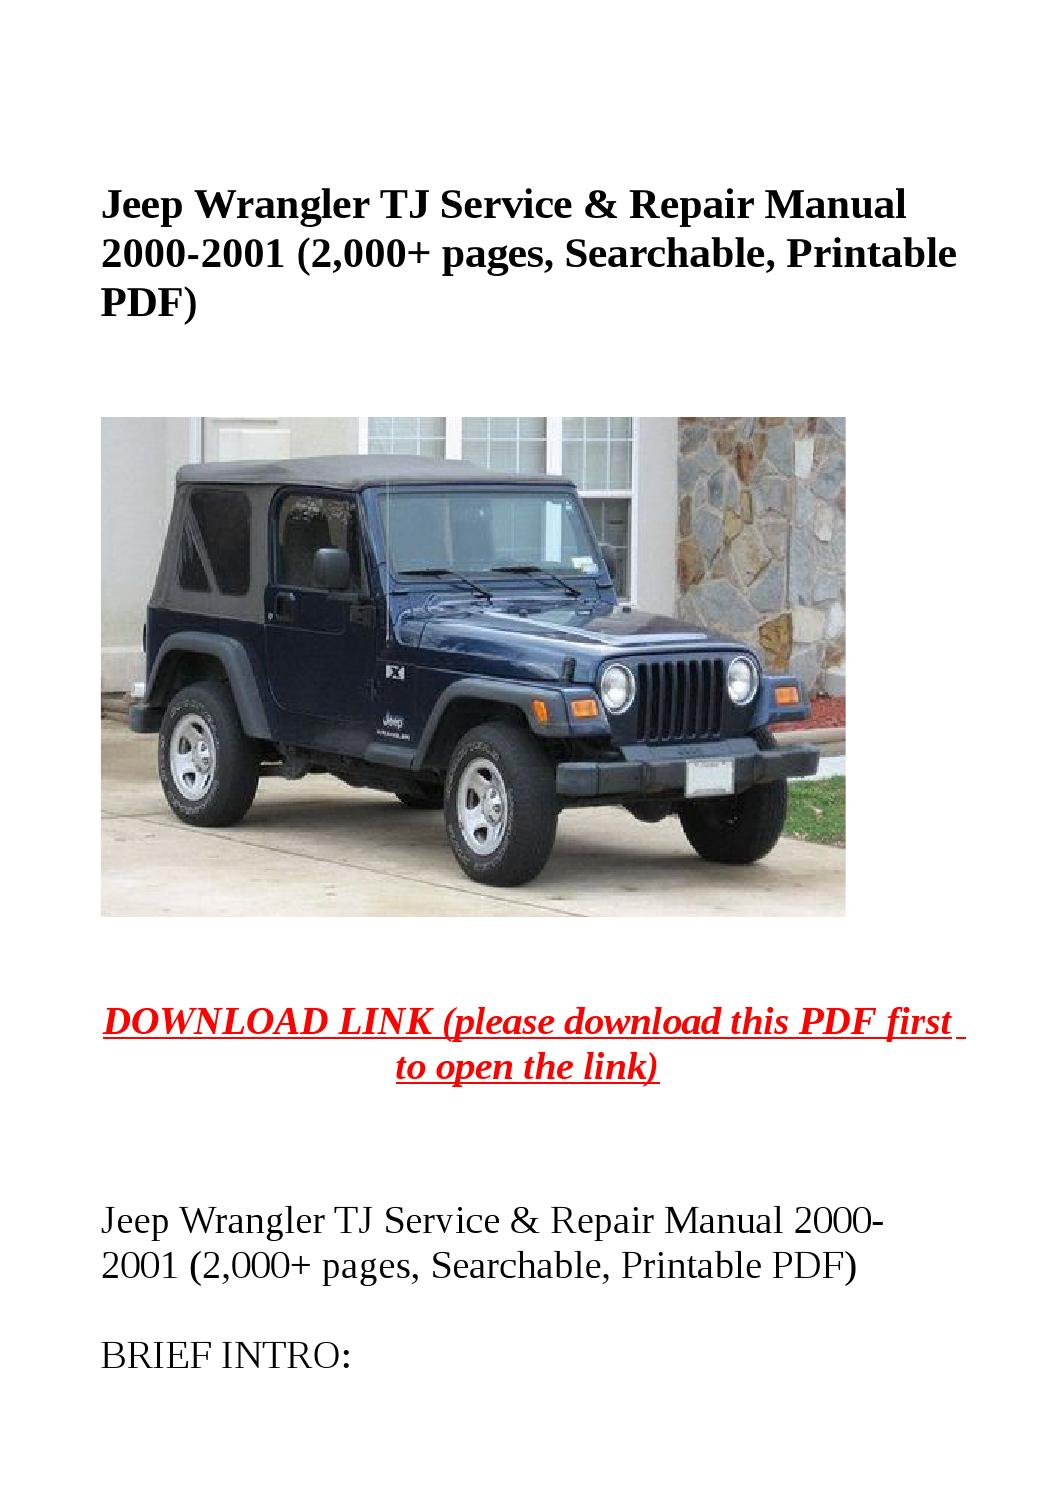 Jeep wrangler tj service & repair manual 2000 2001 (2,000 pages,  searchable, printable pdf) by yghj - issuu